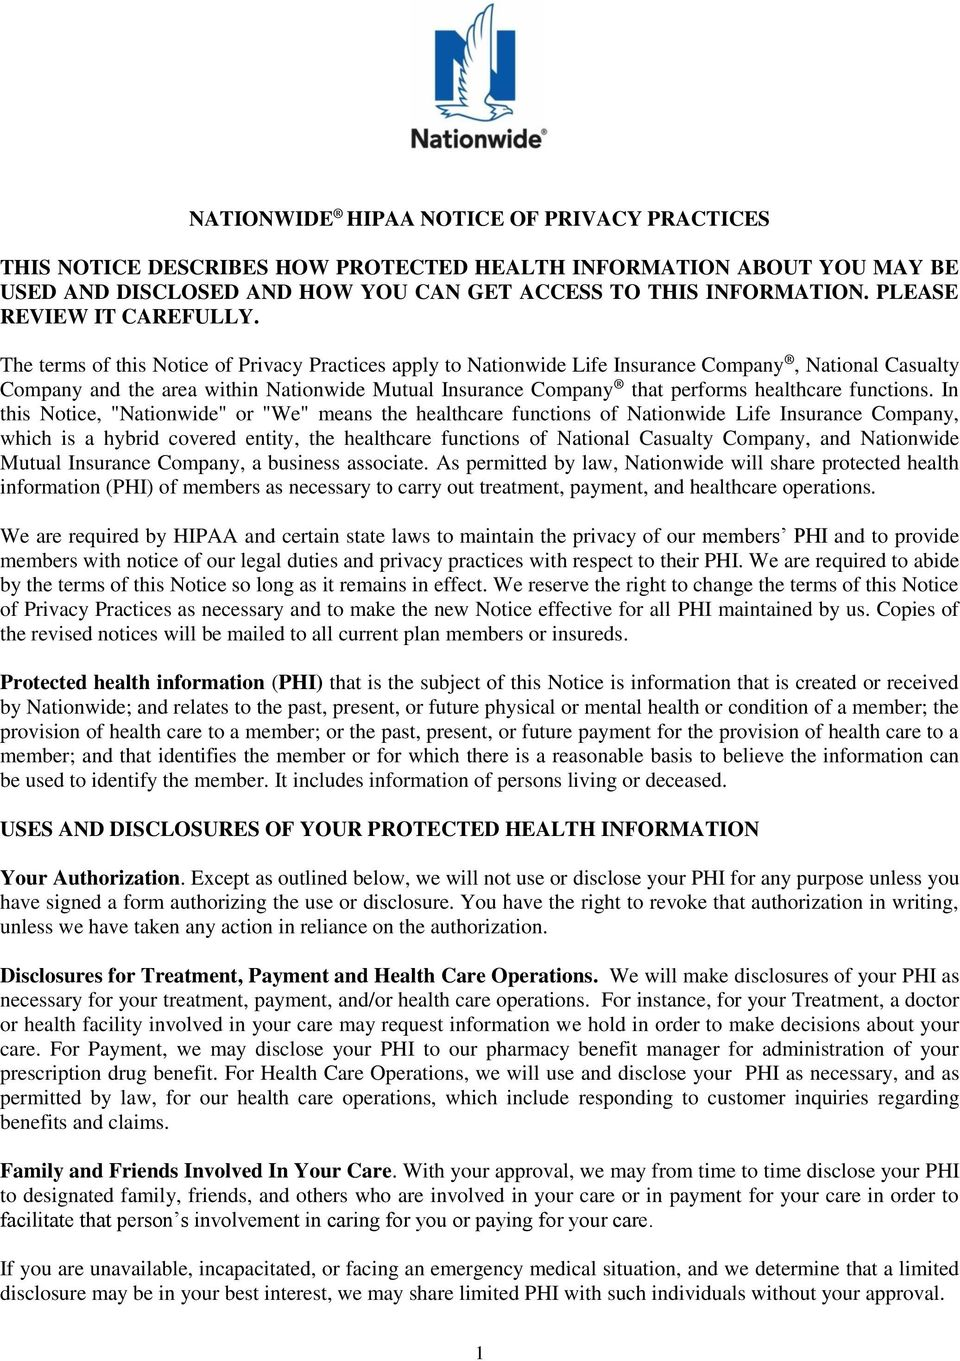 NATIONWIDE HIPAA NOTICE OF PRIVACY PRACTICES - PDF